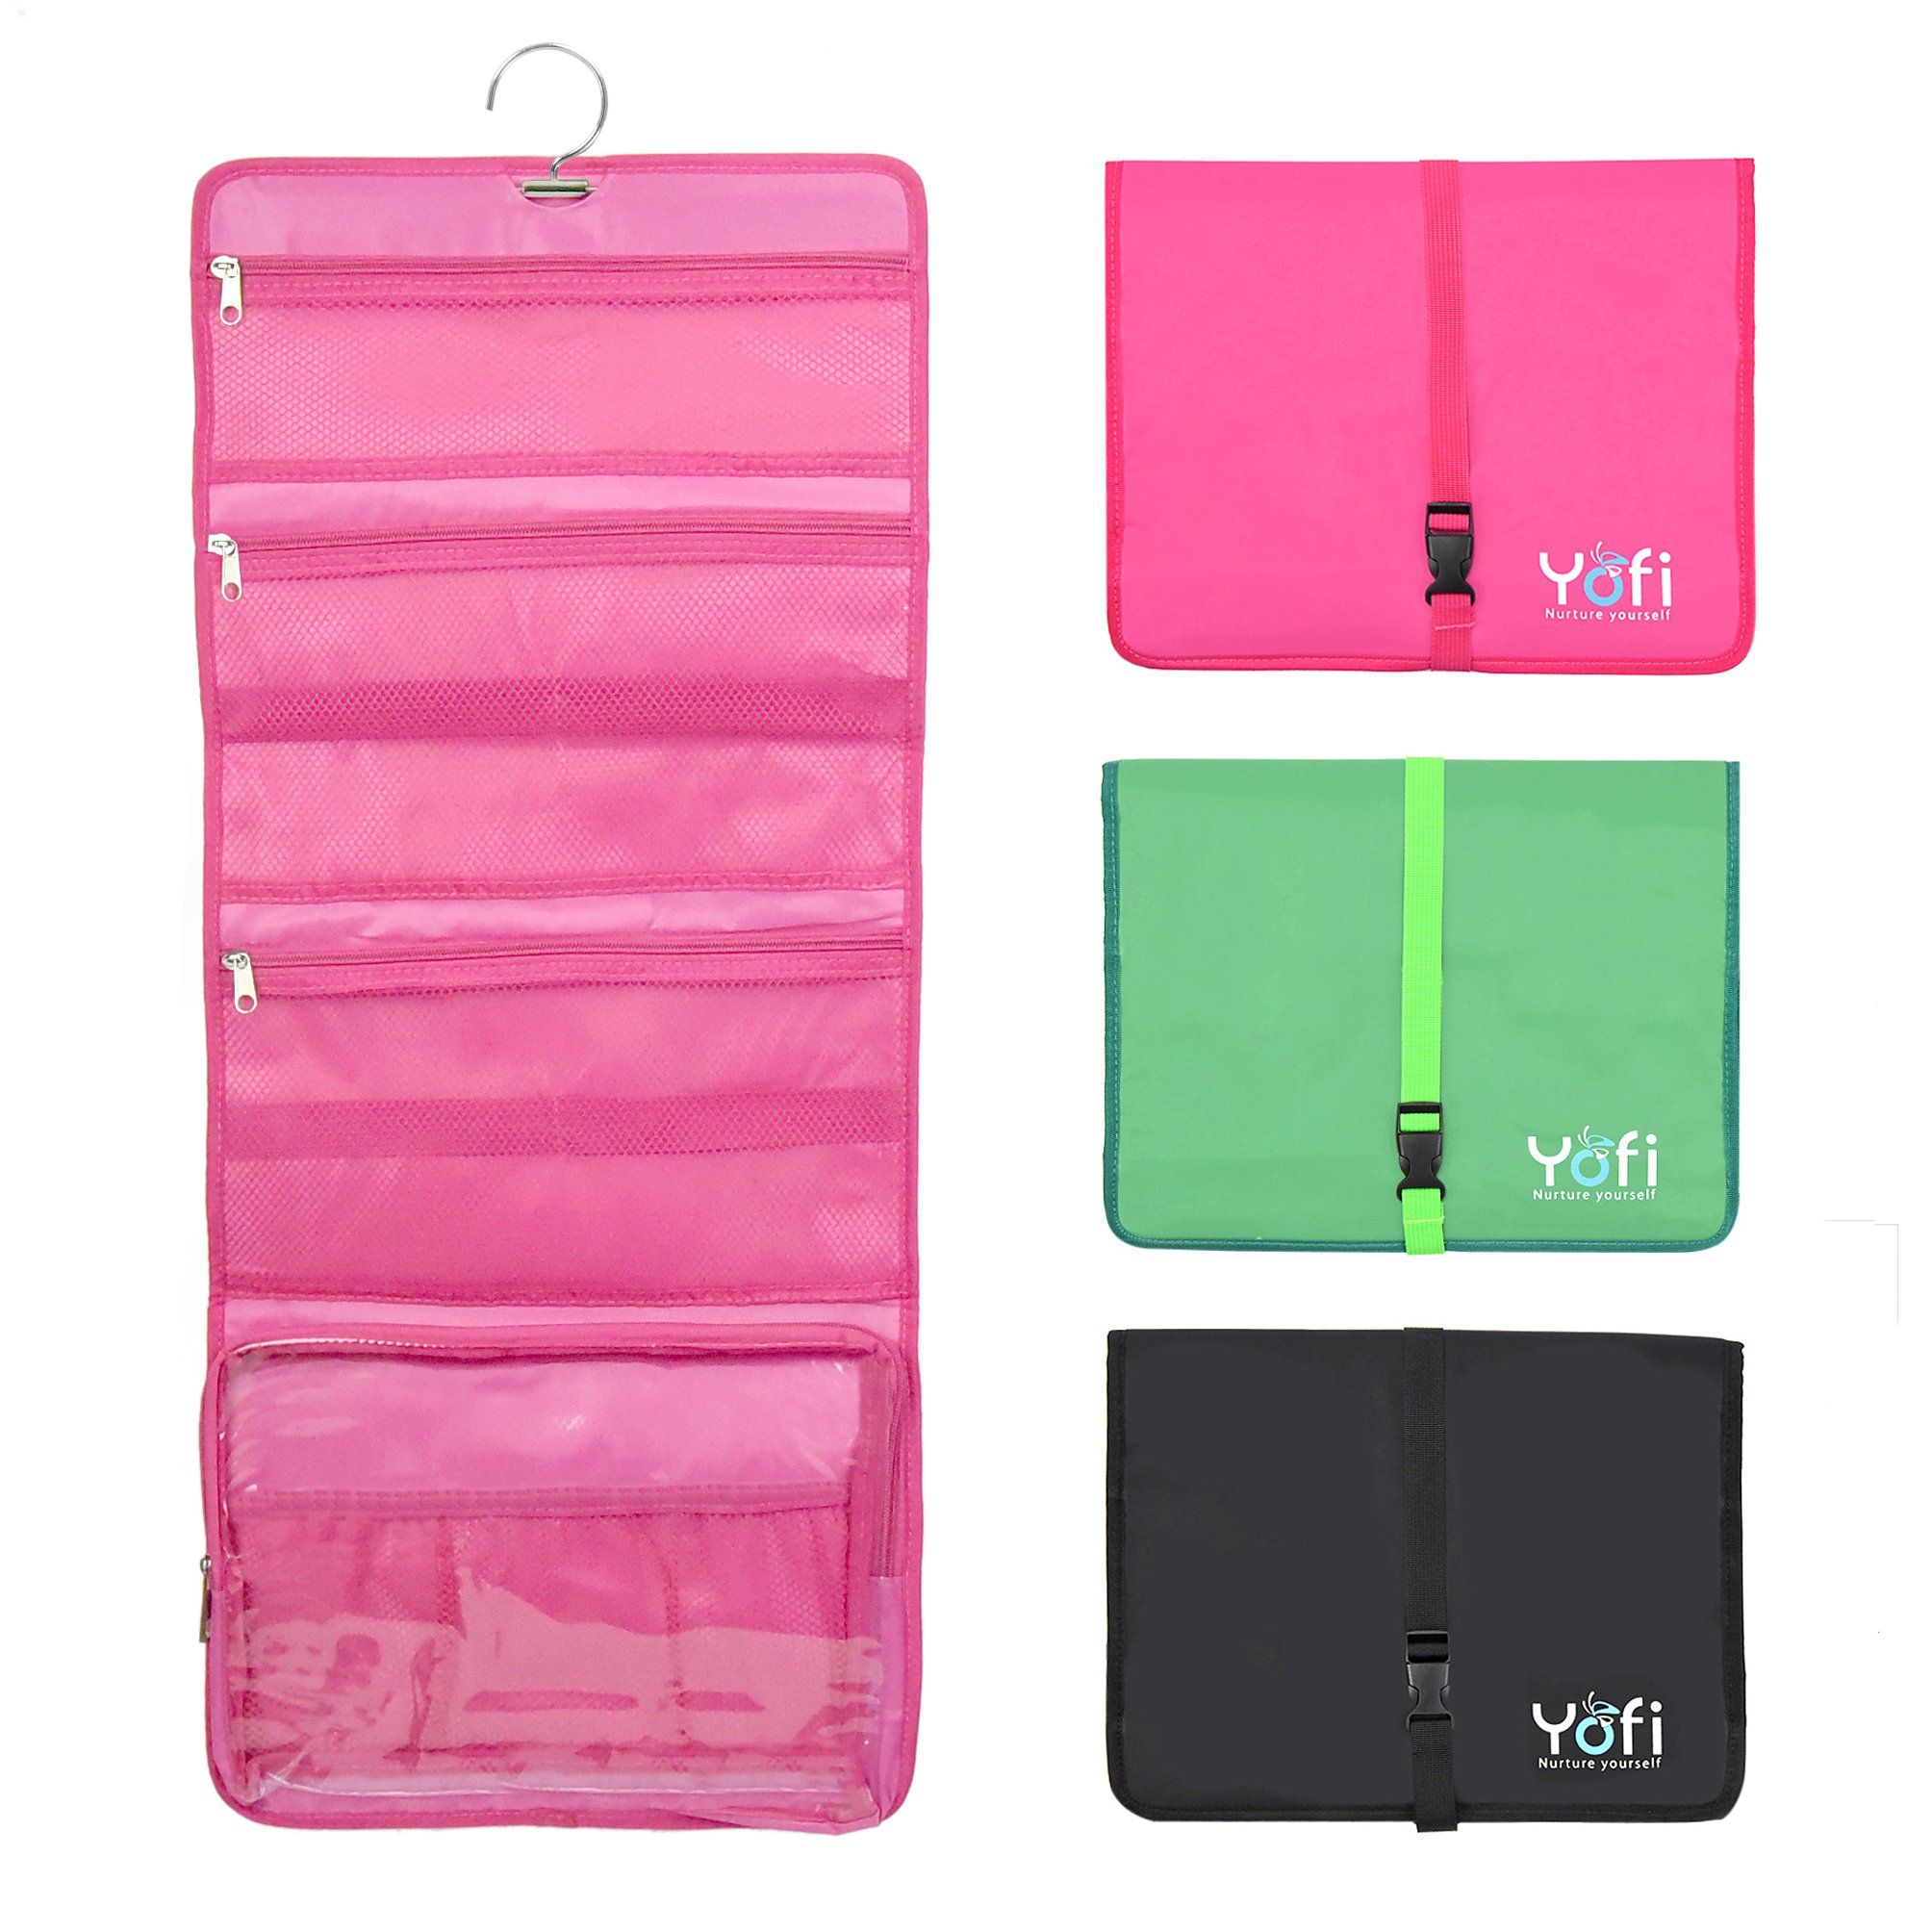 Hanging Toiletry Bag By Yofi Nurture Yourself Organizer For